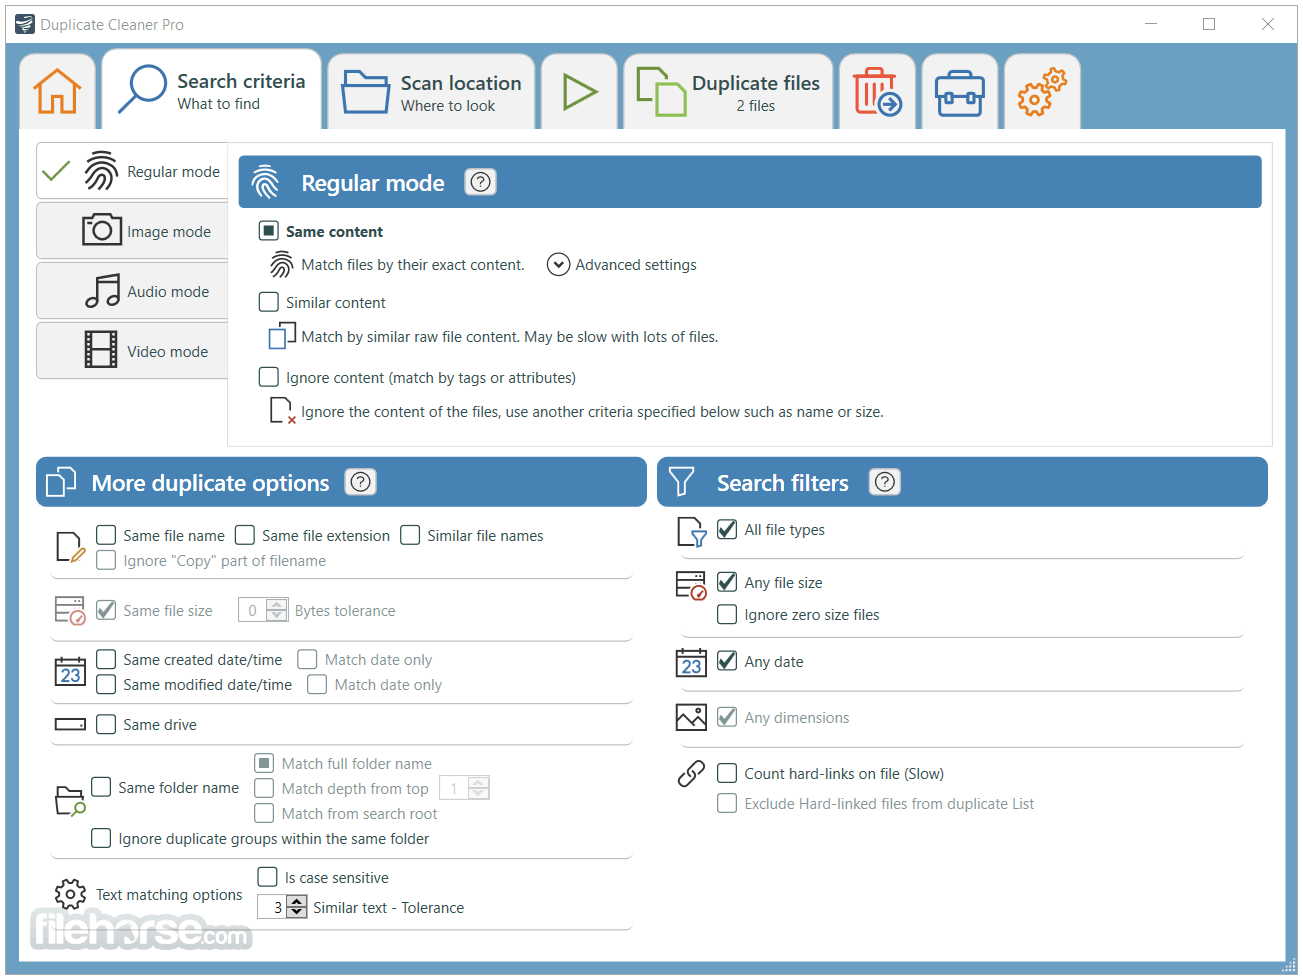 Duplicate Cleaner Free 4.1.0 Screenshot 2